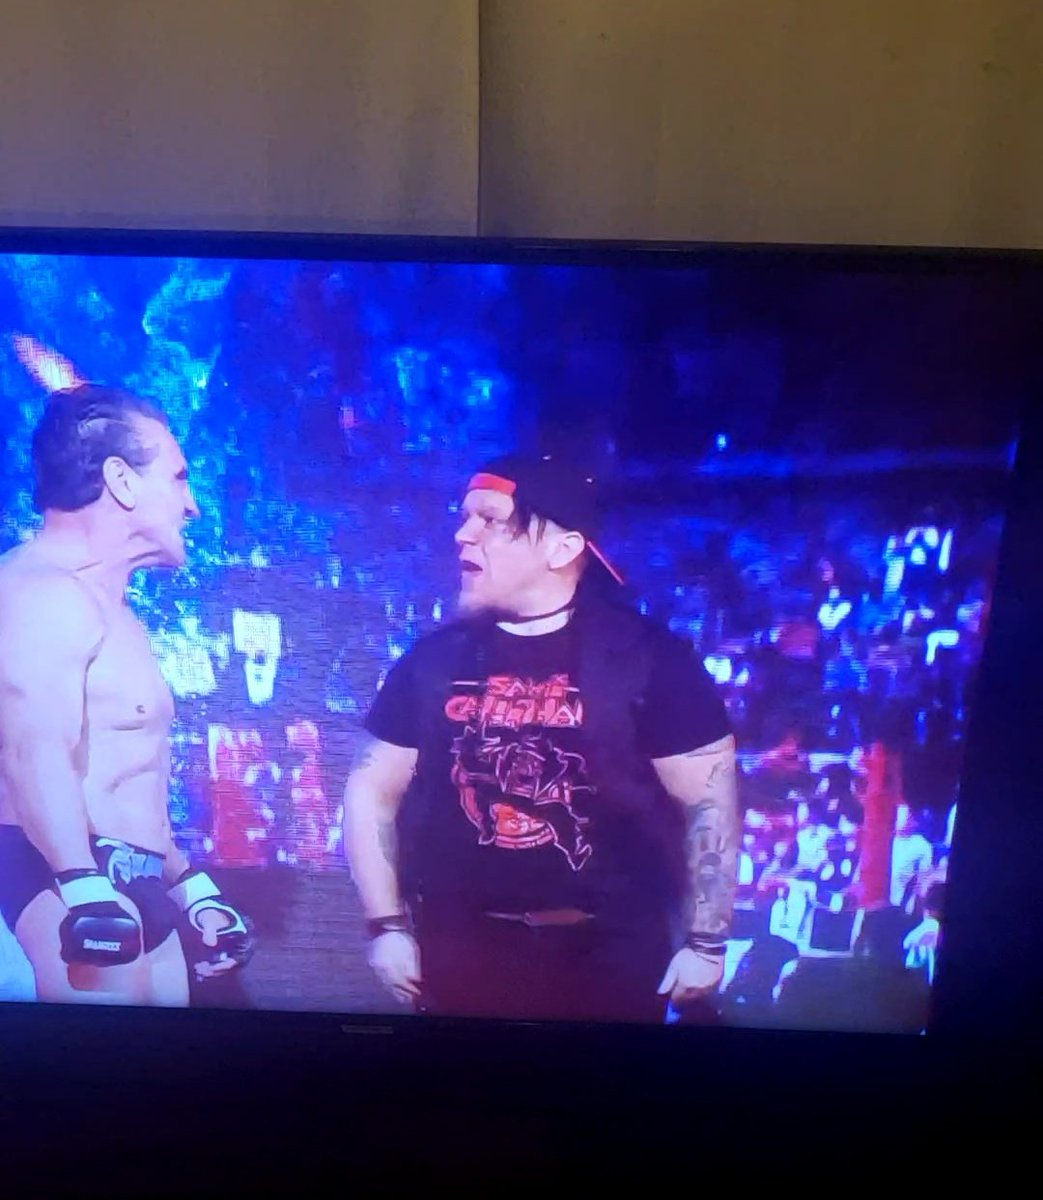 Awesome to see @TheSamiCallihan repping his @grudgematchbrnd on impact! #IMPACTonAXSTV